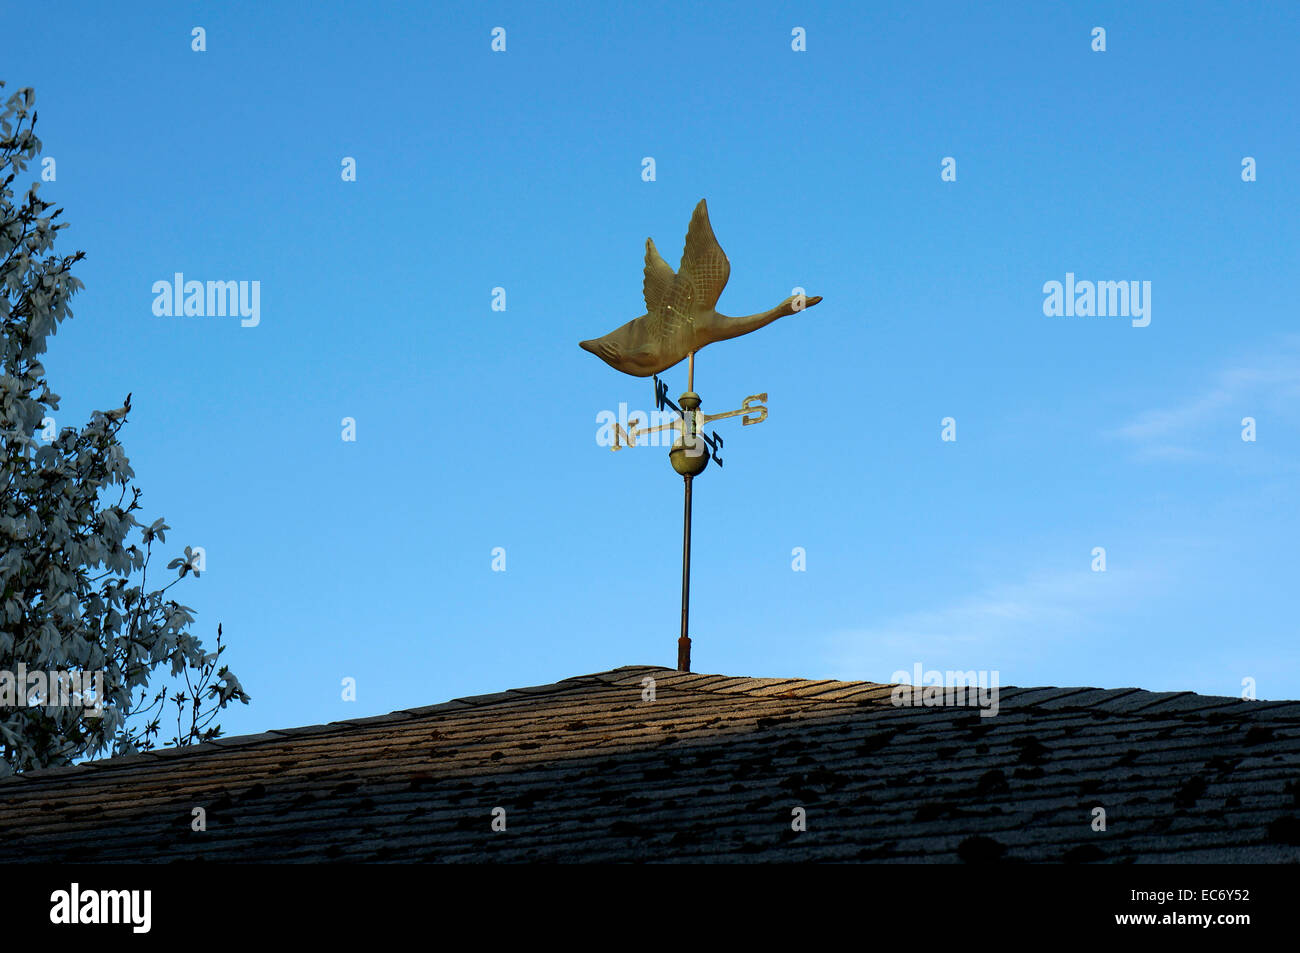 canada-goose-weather-vane-on-a-house-roo